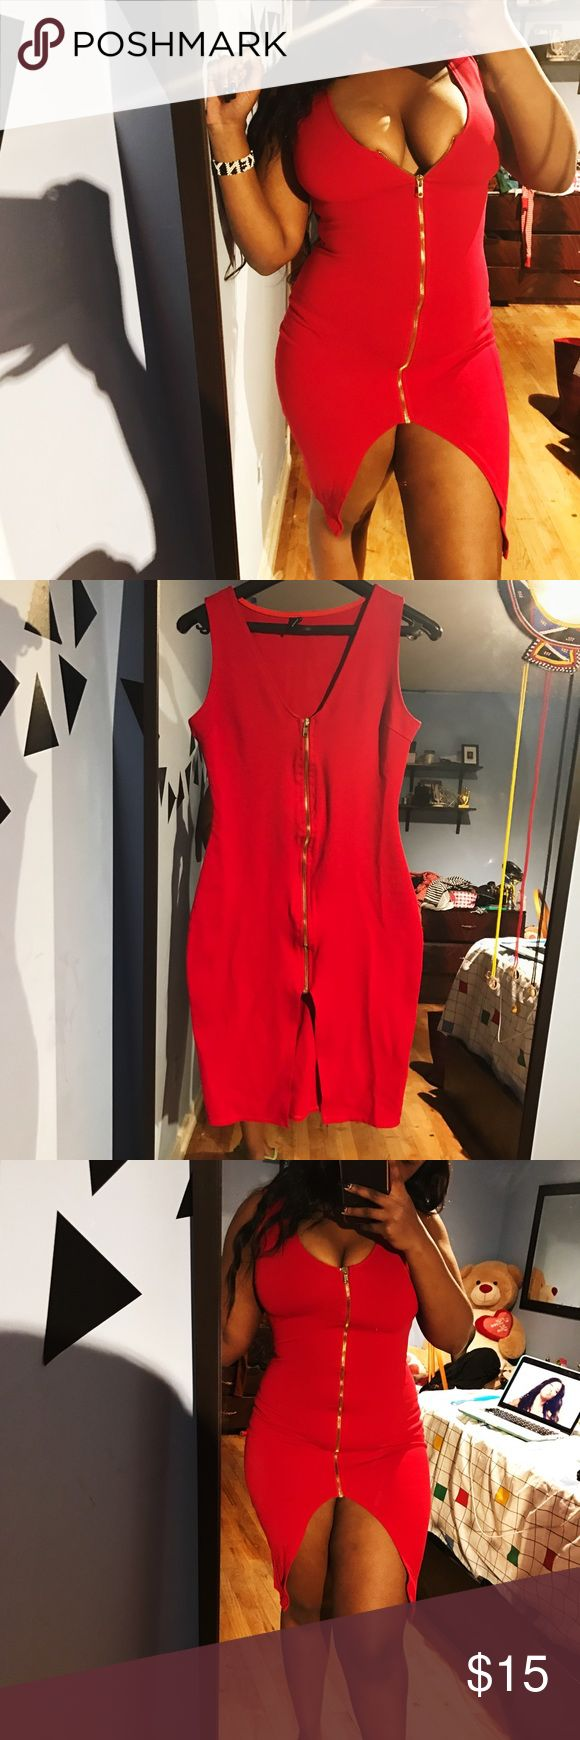 Red zip dress Hot red zip up dress I purchased from Windsor, worn once. Very flattering and shows of all your curves & some boobies lol winsdor Dresses Midi